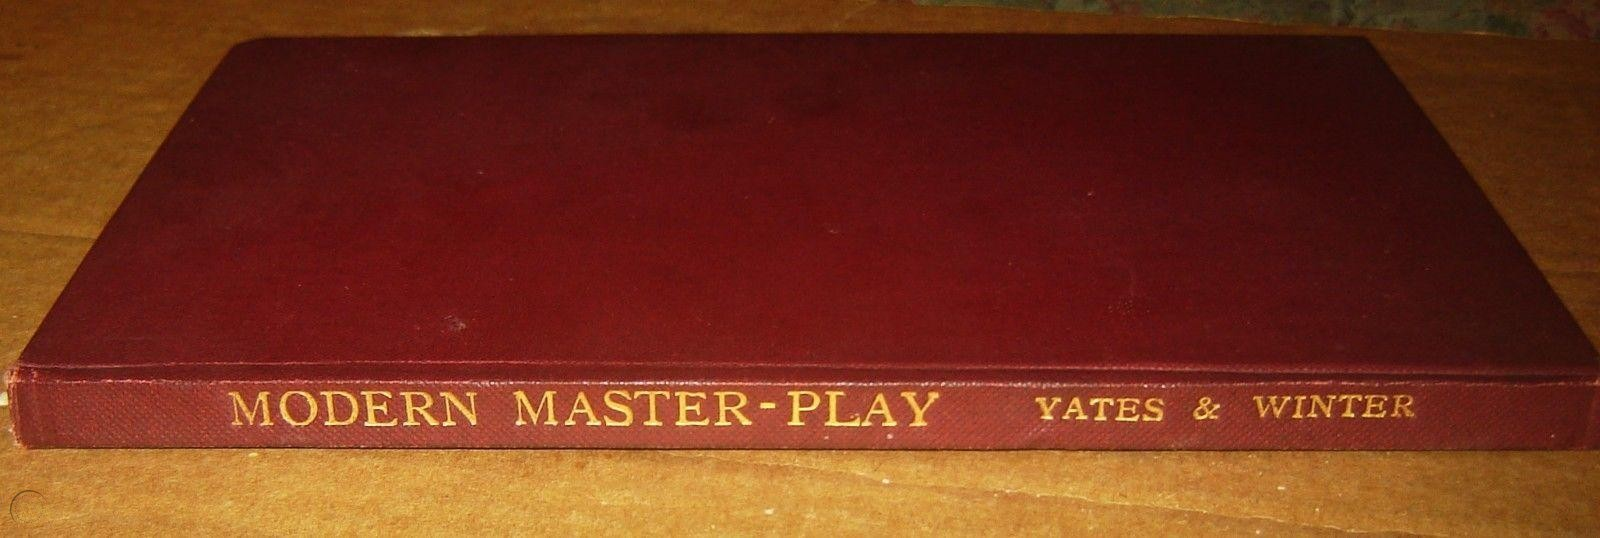 Modern Master Play, FD Yates and W. Winter, 1930